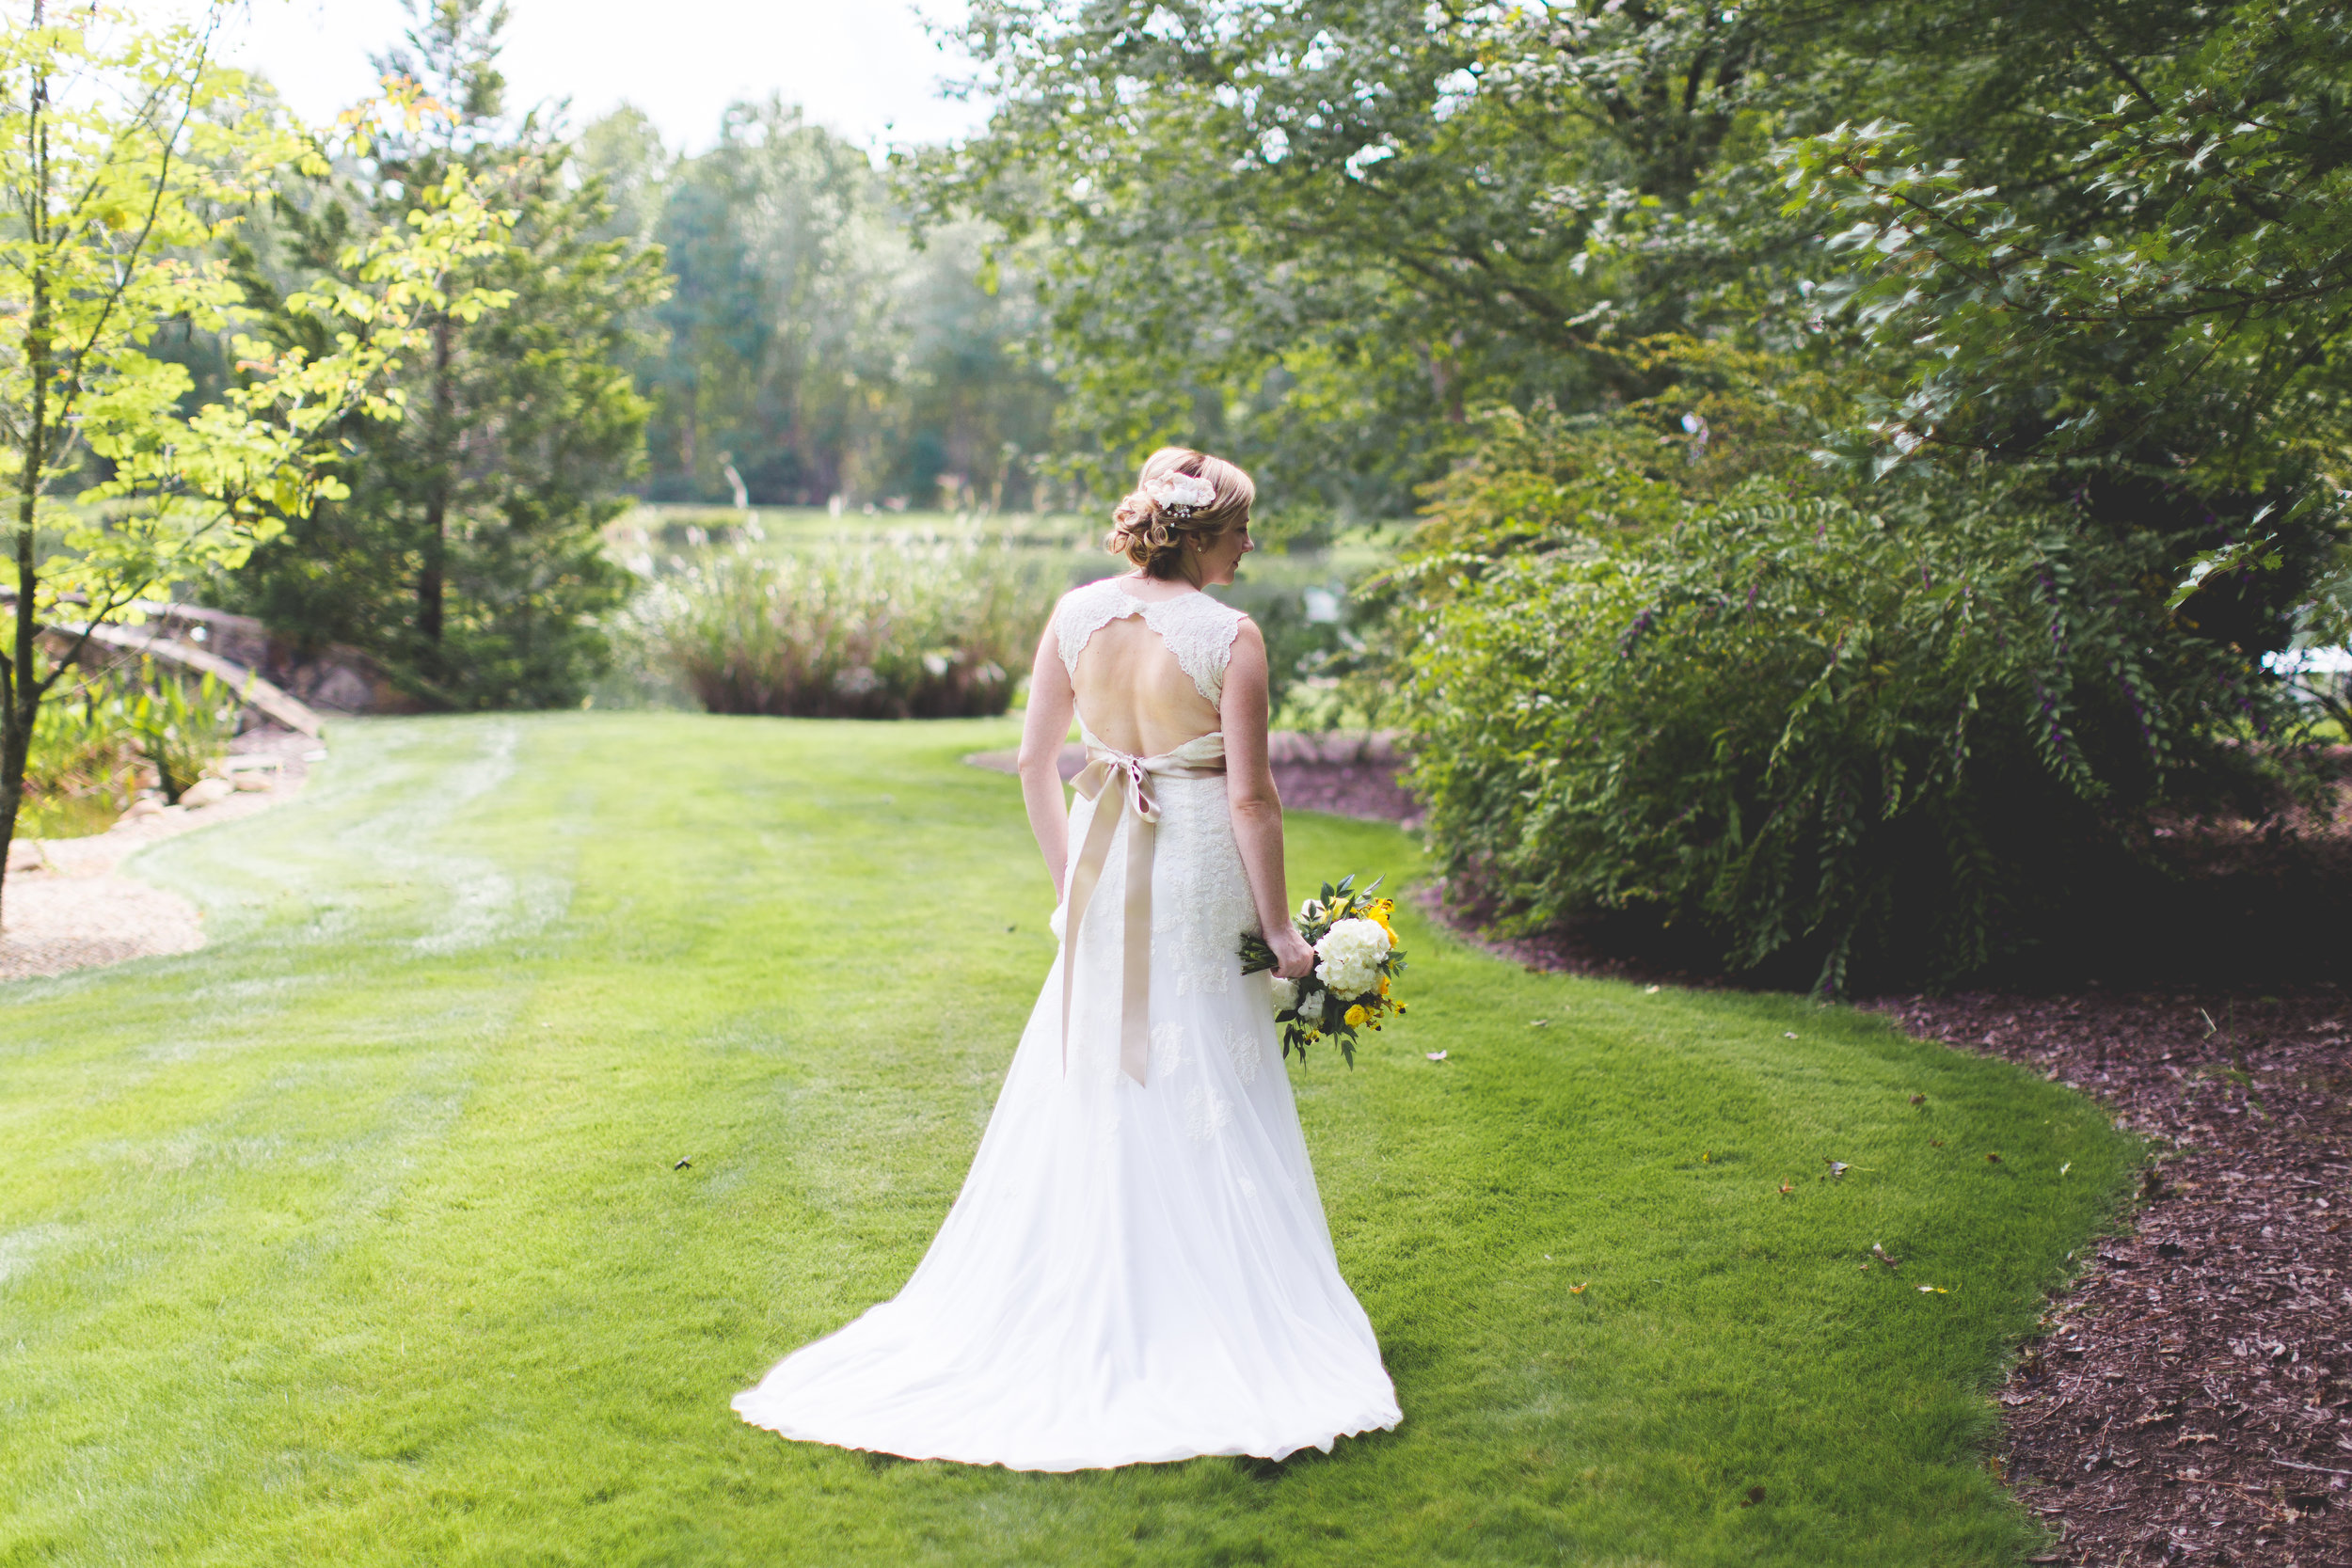 Copy of Bridals on the lawn